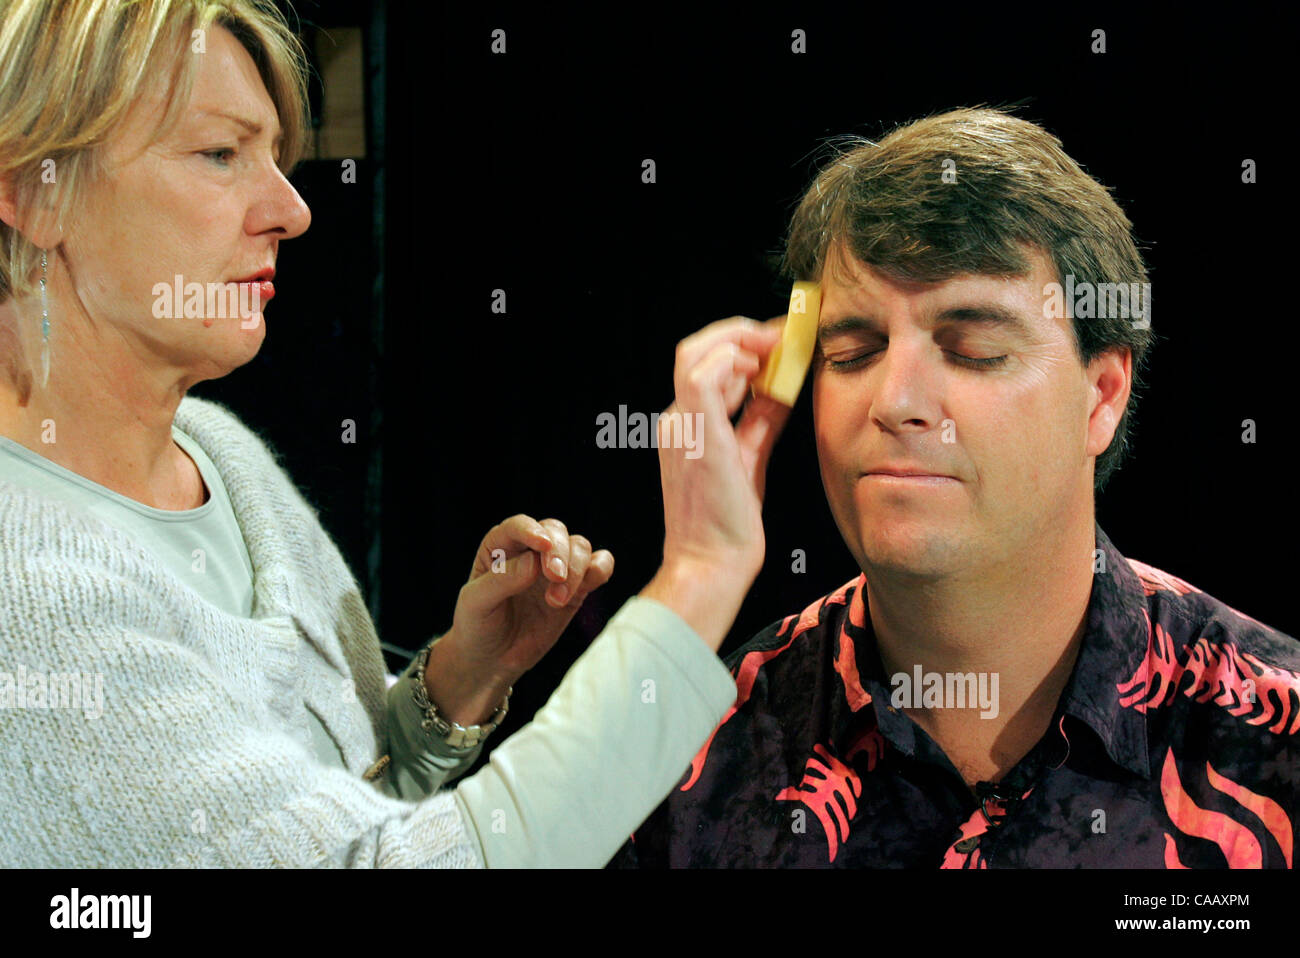 Hot Topics executive producer INGRID HOFFMEISTER does final touches on the face of the show's host T. PAT STUBBS - Stock Image